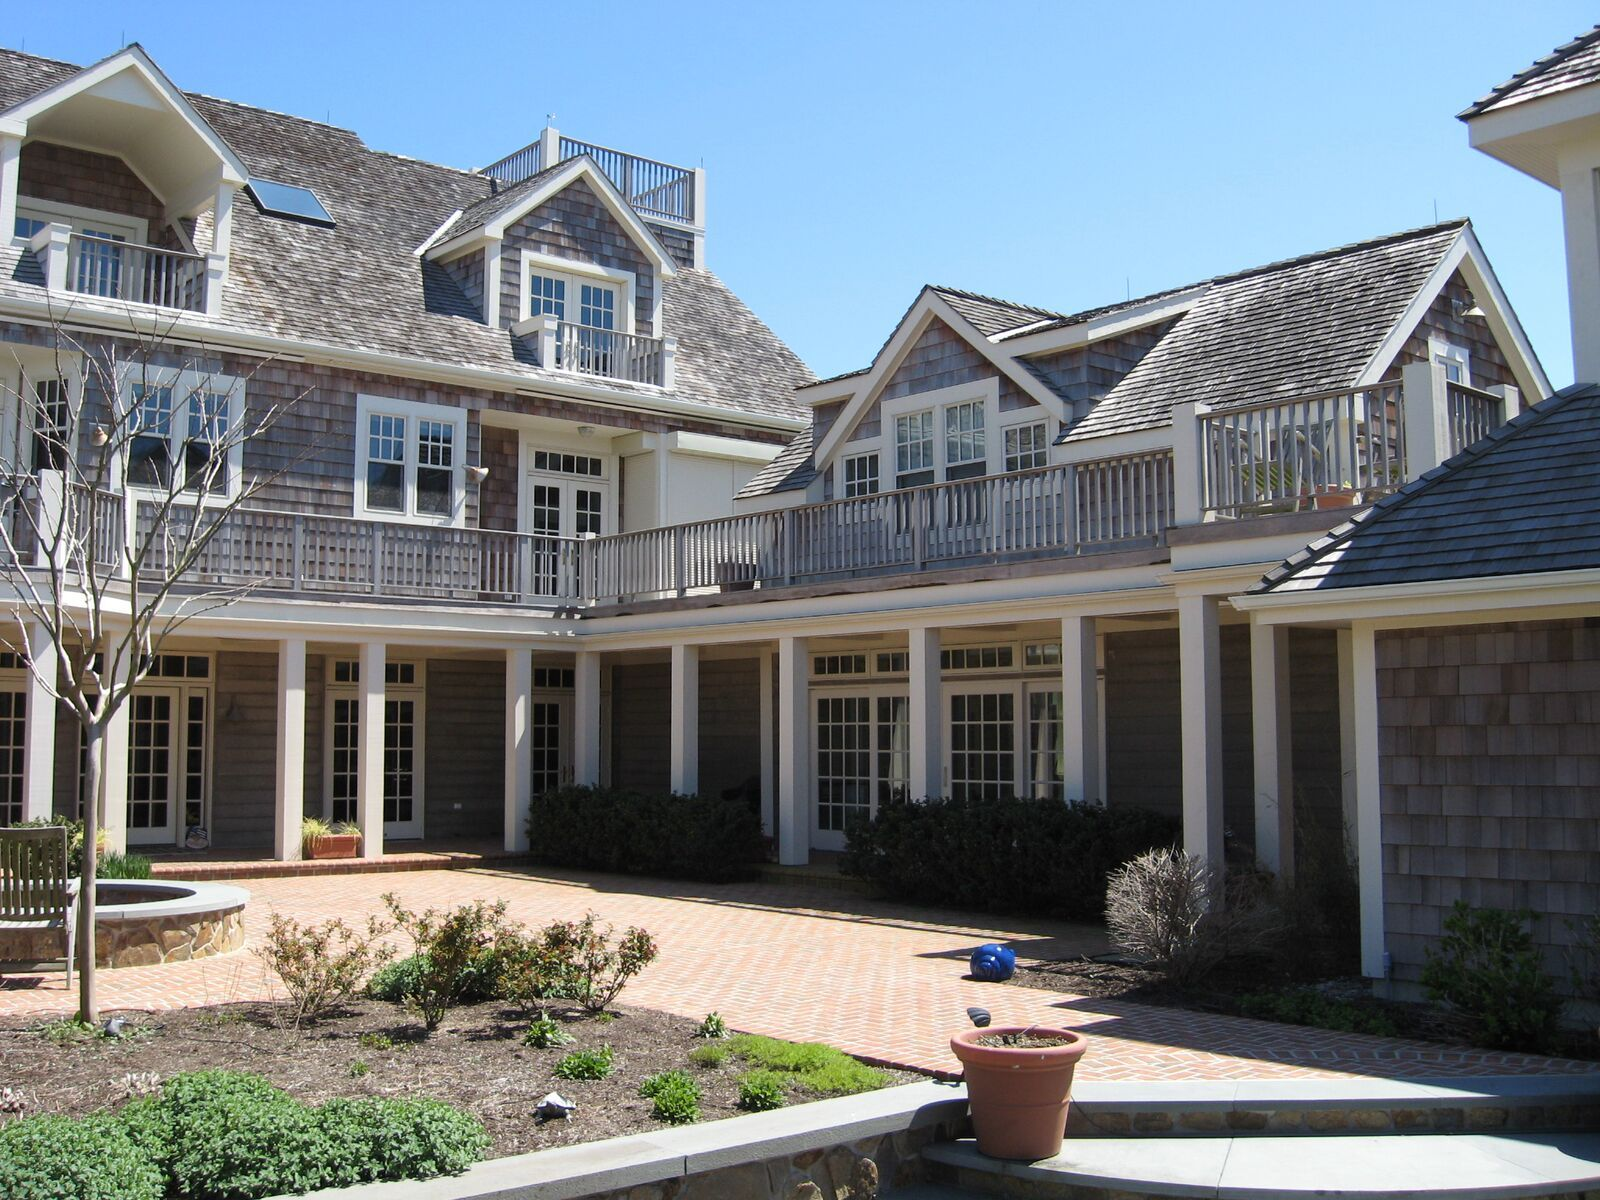 Image Result For Great Nantucket Style Beach House Plans Beach House Exterior Shingle Siding House Shingle Style Homes